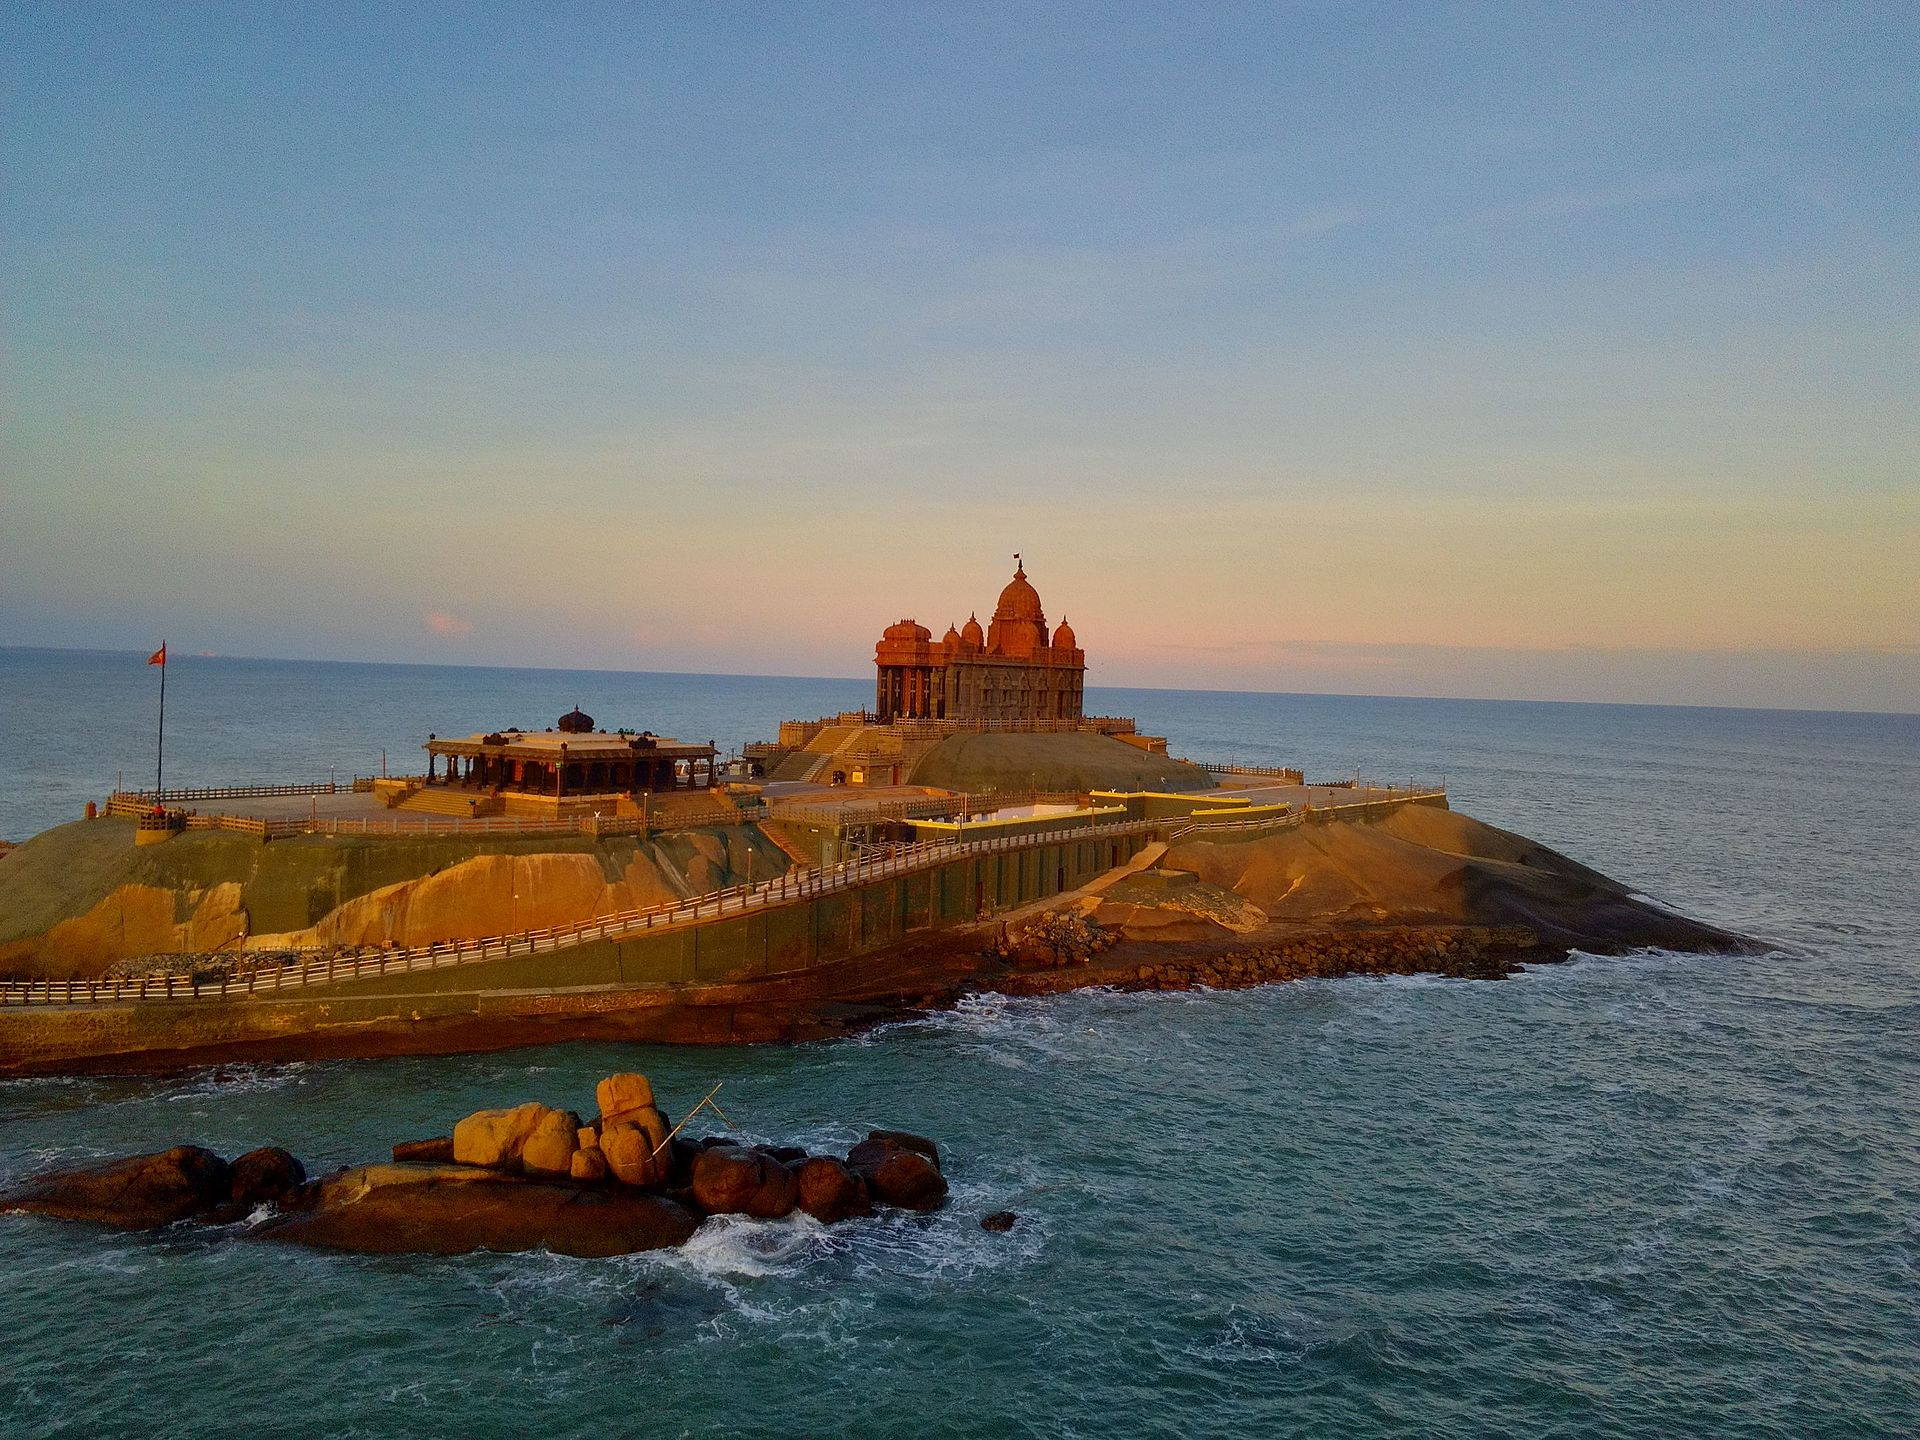 kanyakumari the tourist centre description Tourism of kanyakumari: explore things to do, places to visit, best time to visit,   besides its importance as a hindu pilgrim center, it is famous for its beautiful.